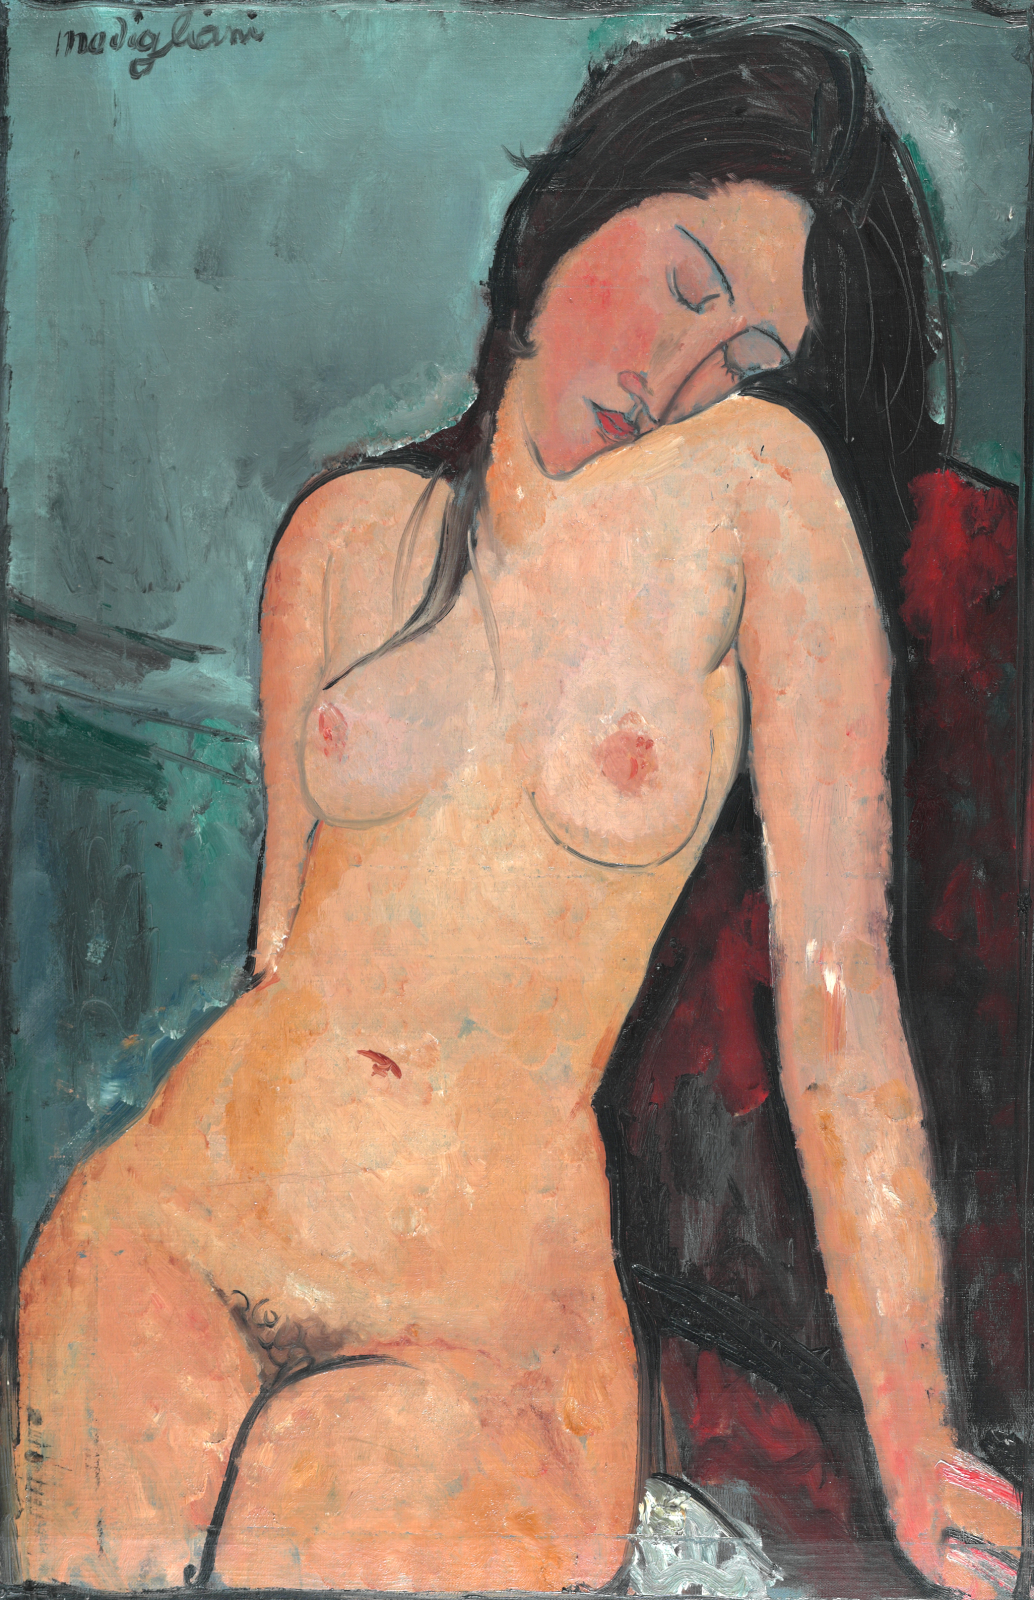 Female Nude (1916), Courtauld Institute of Art, Londra, İngiltere, 92,4 cm x 59,8 cm